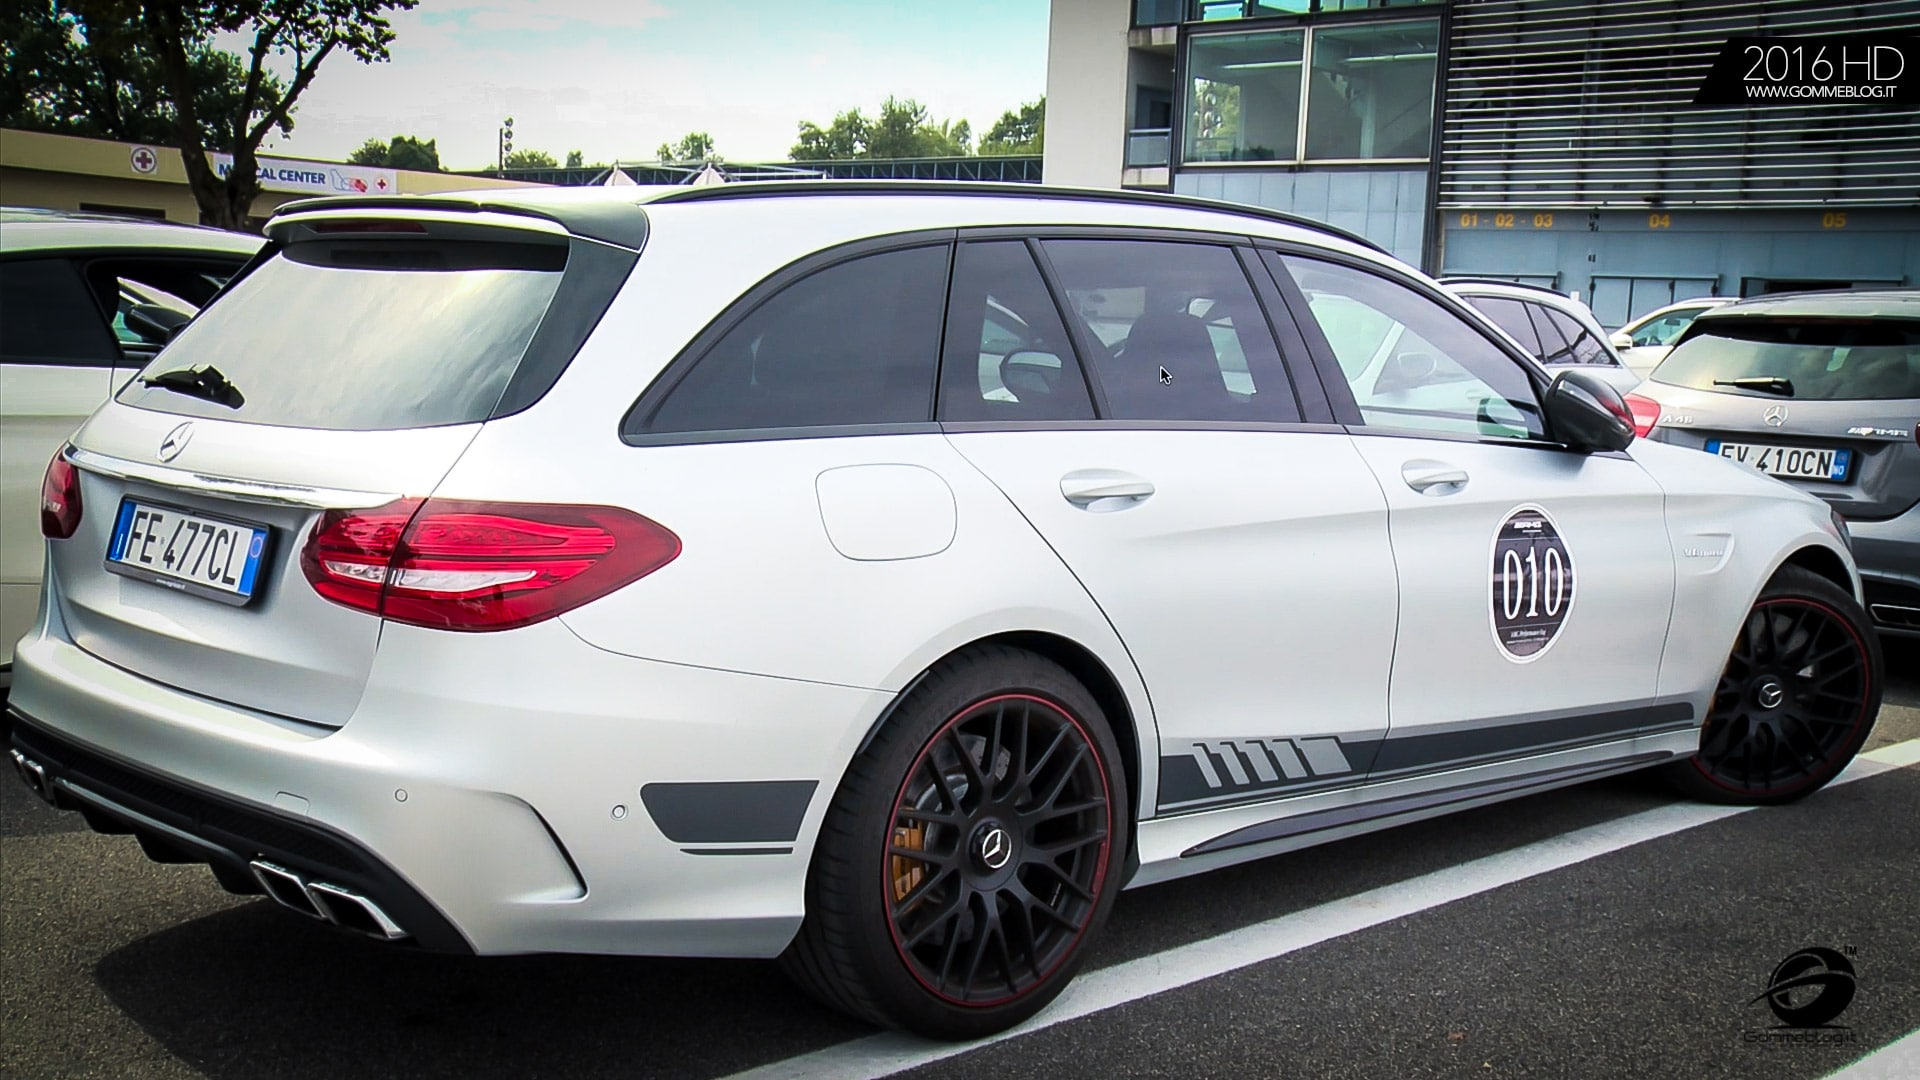 AMG Performance Day: Scende in pista l'Italia High Performance [VIDEO] 2